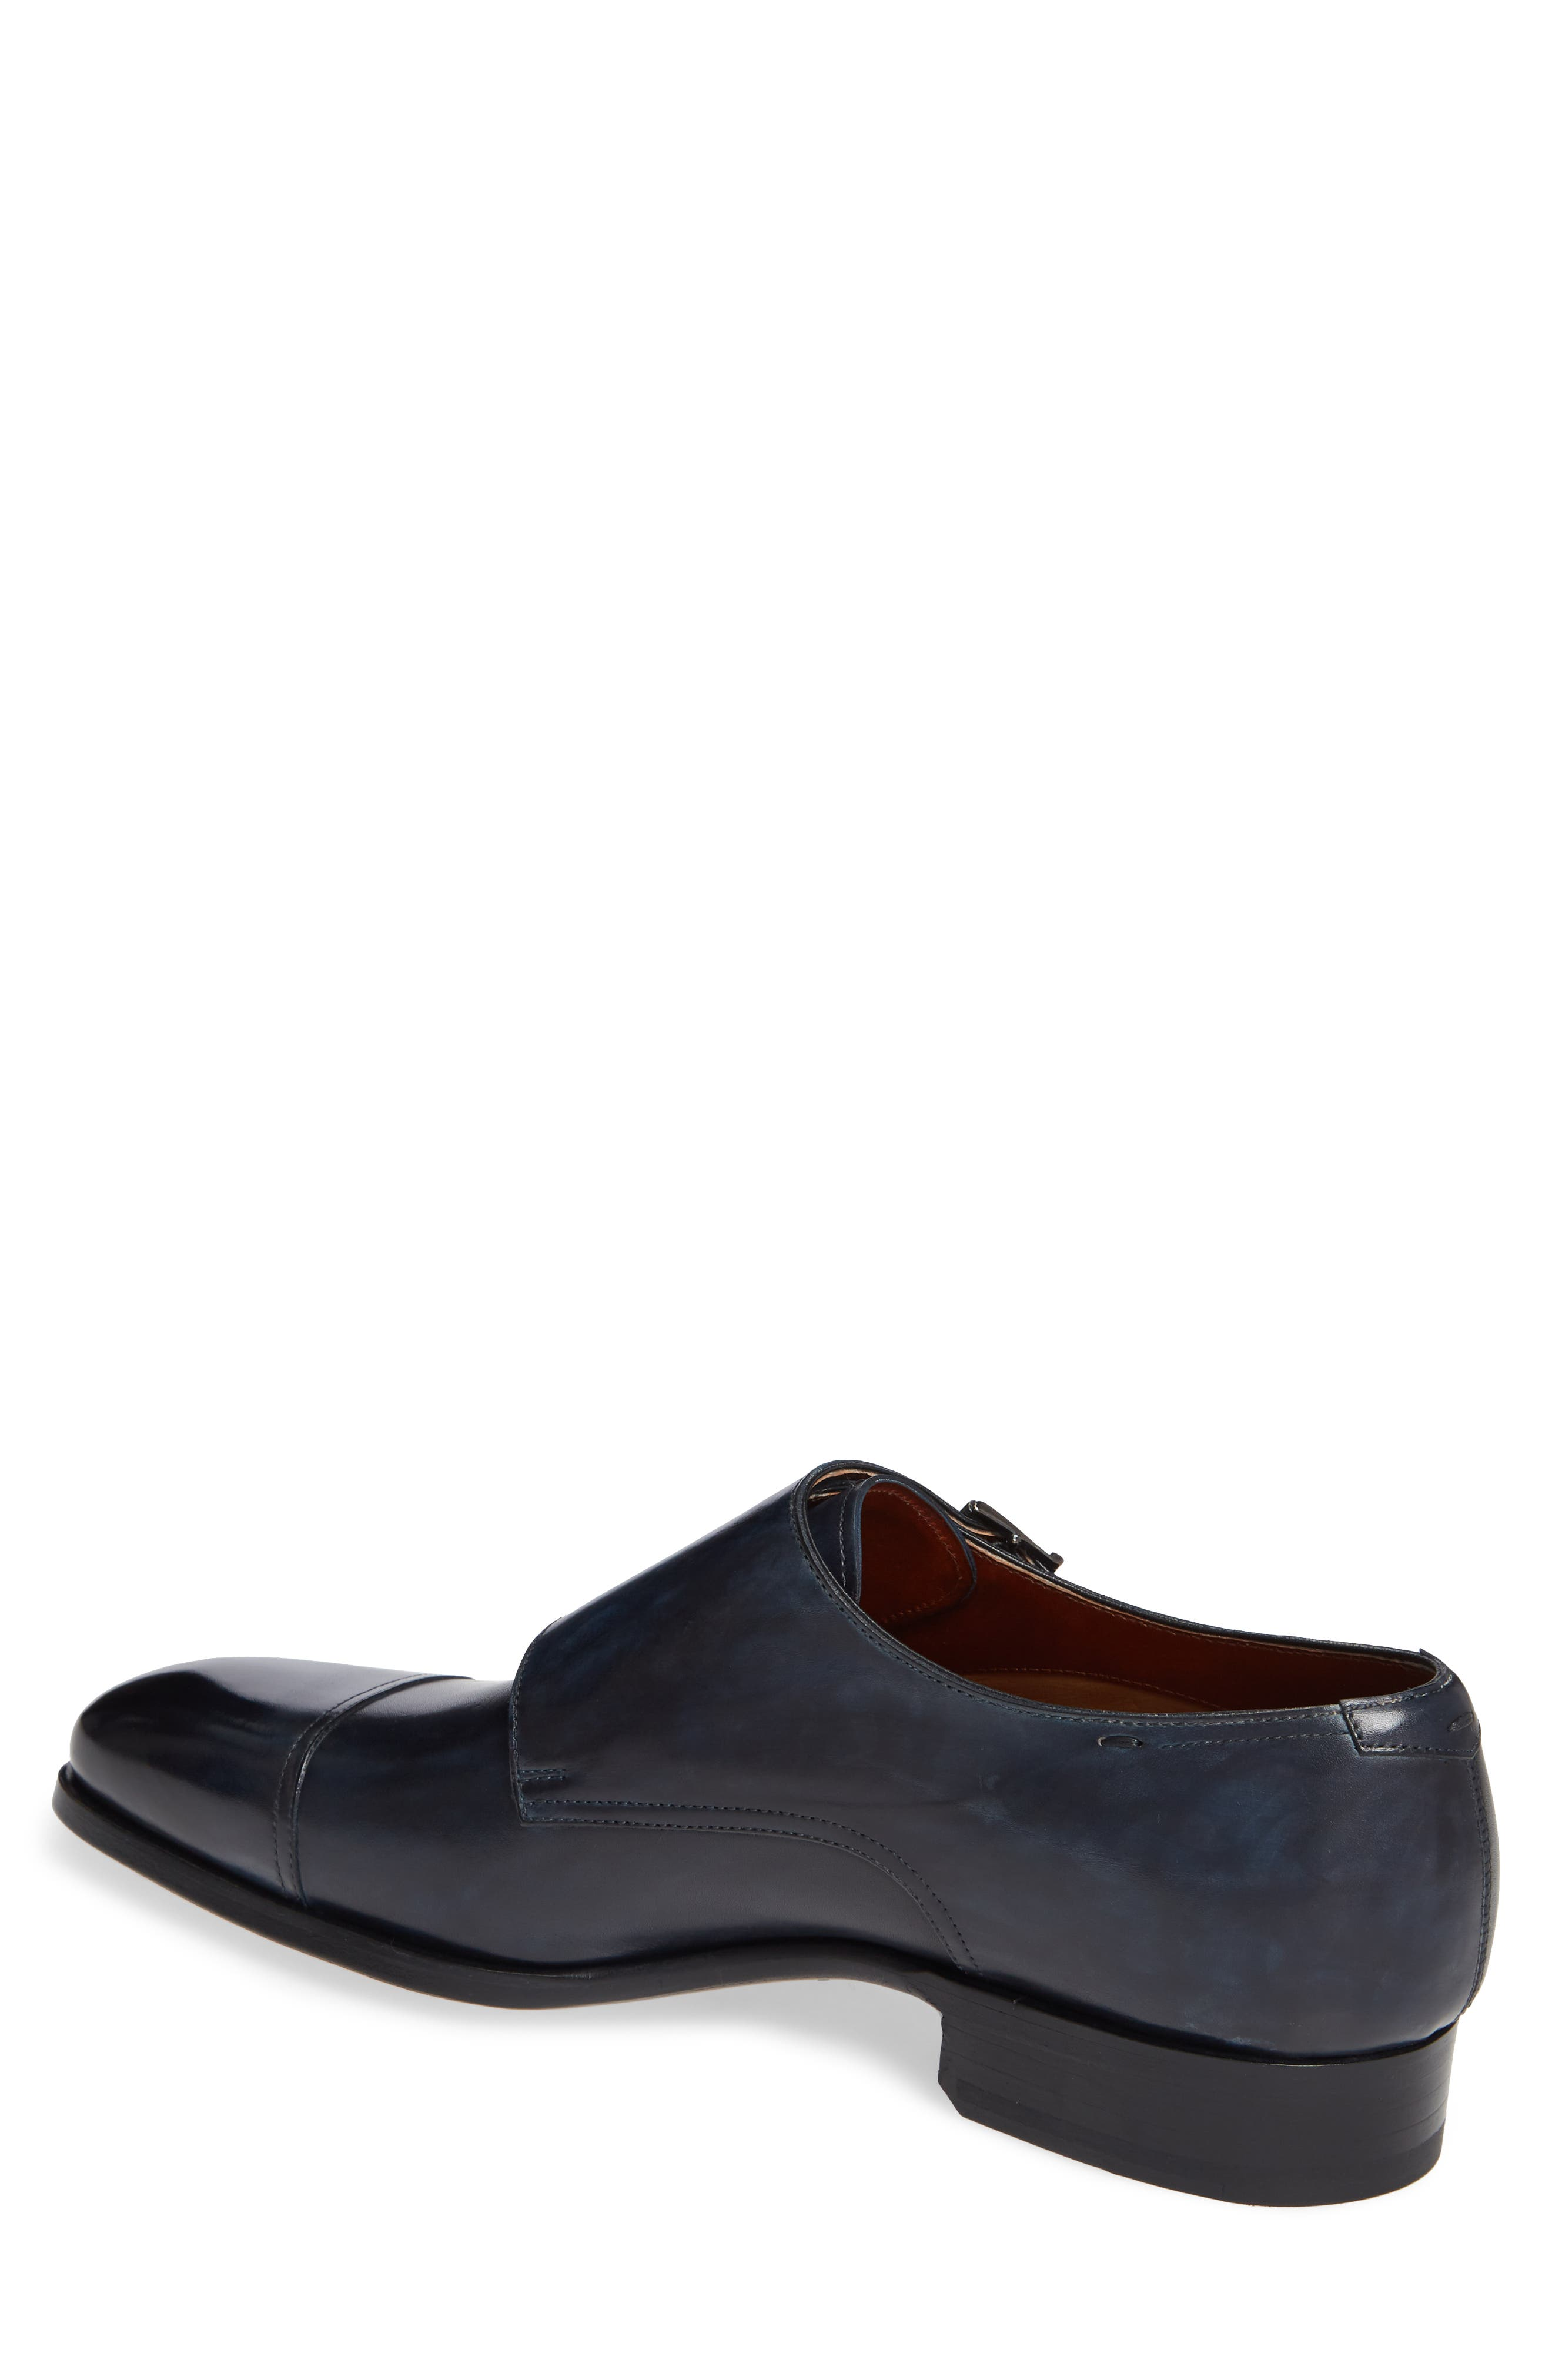 MAGNANNI,                             Wooster Double Monk Strap Shoe,                             Alternate thumbnail 2, color,                             NAVY LEATHER